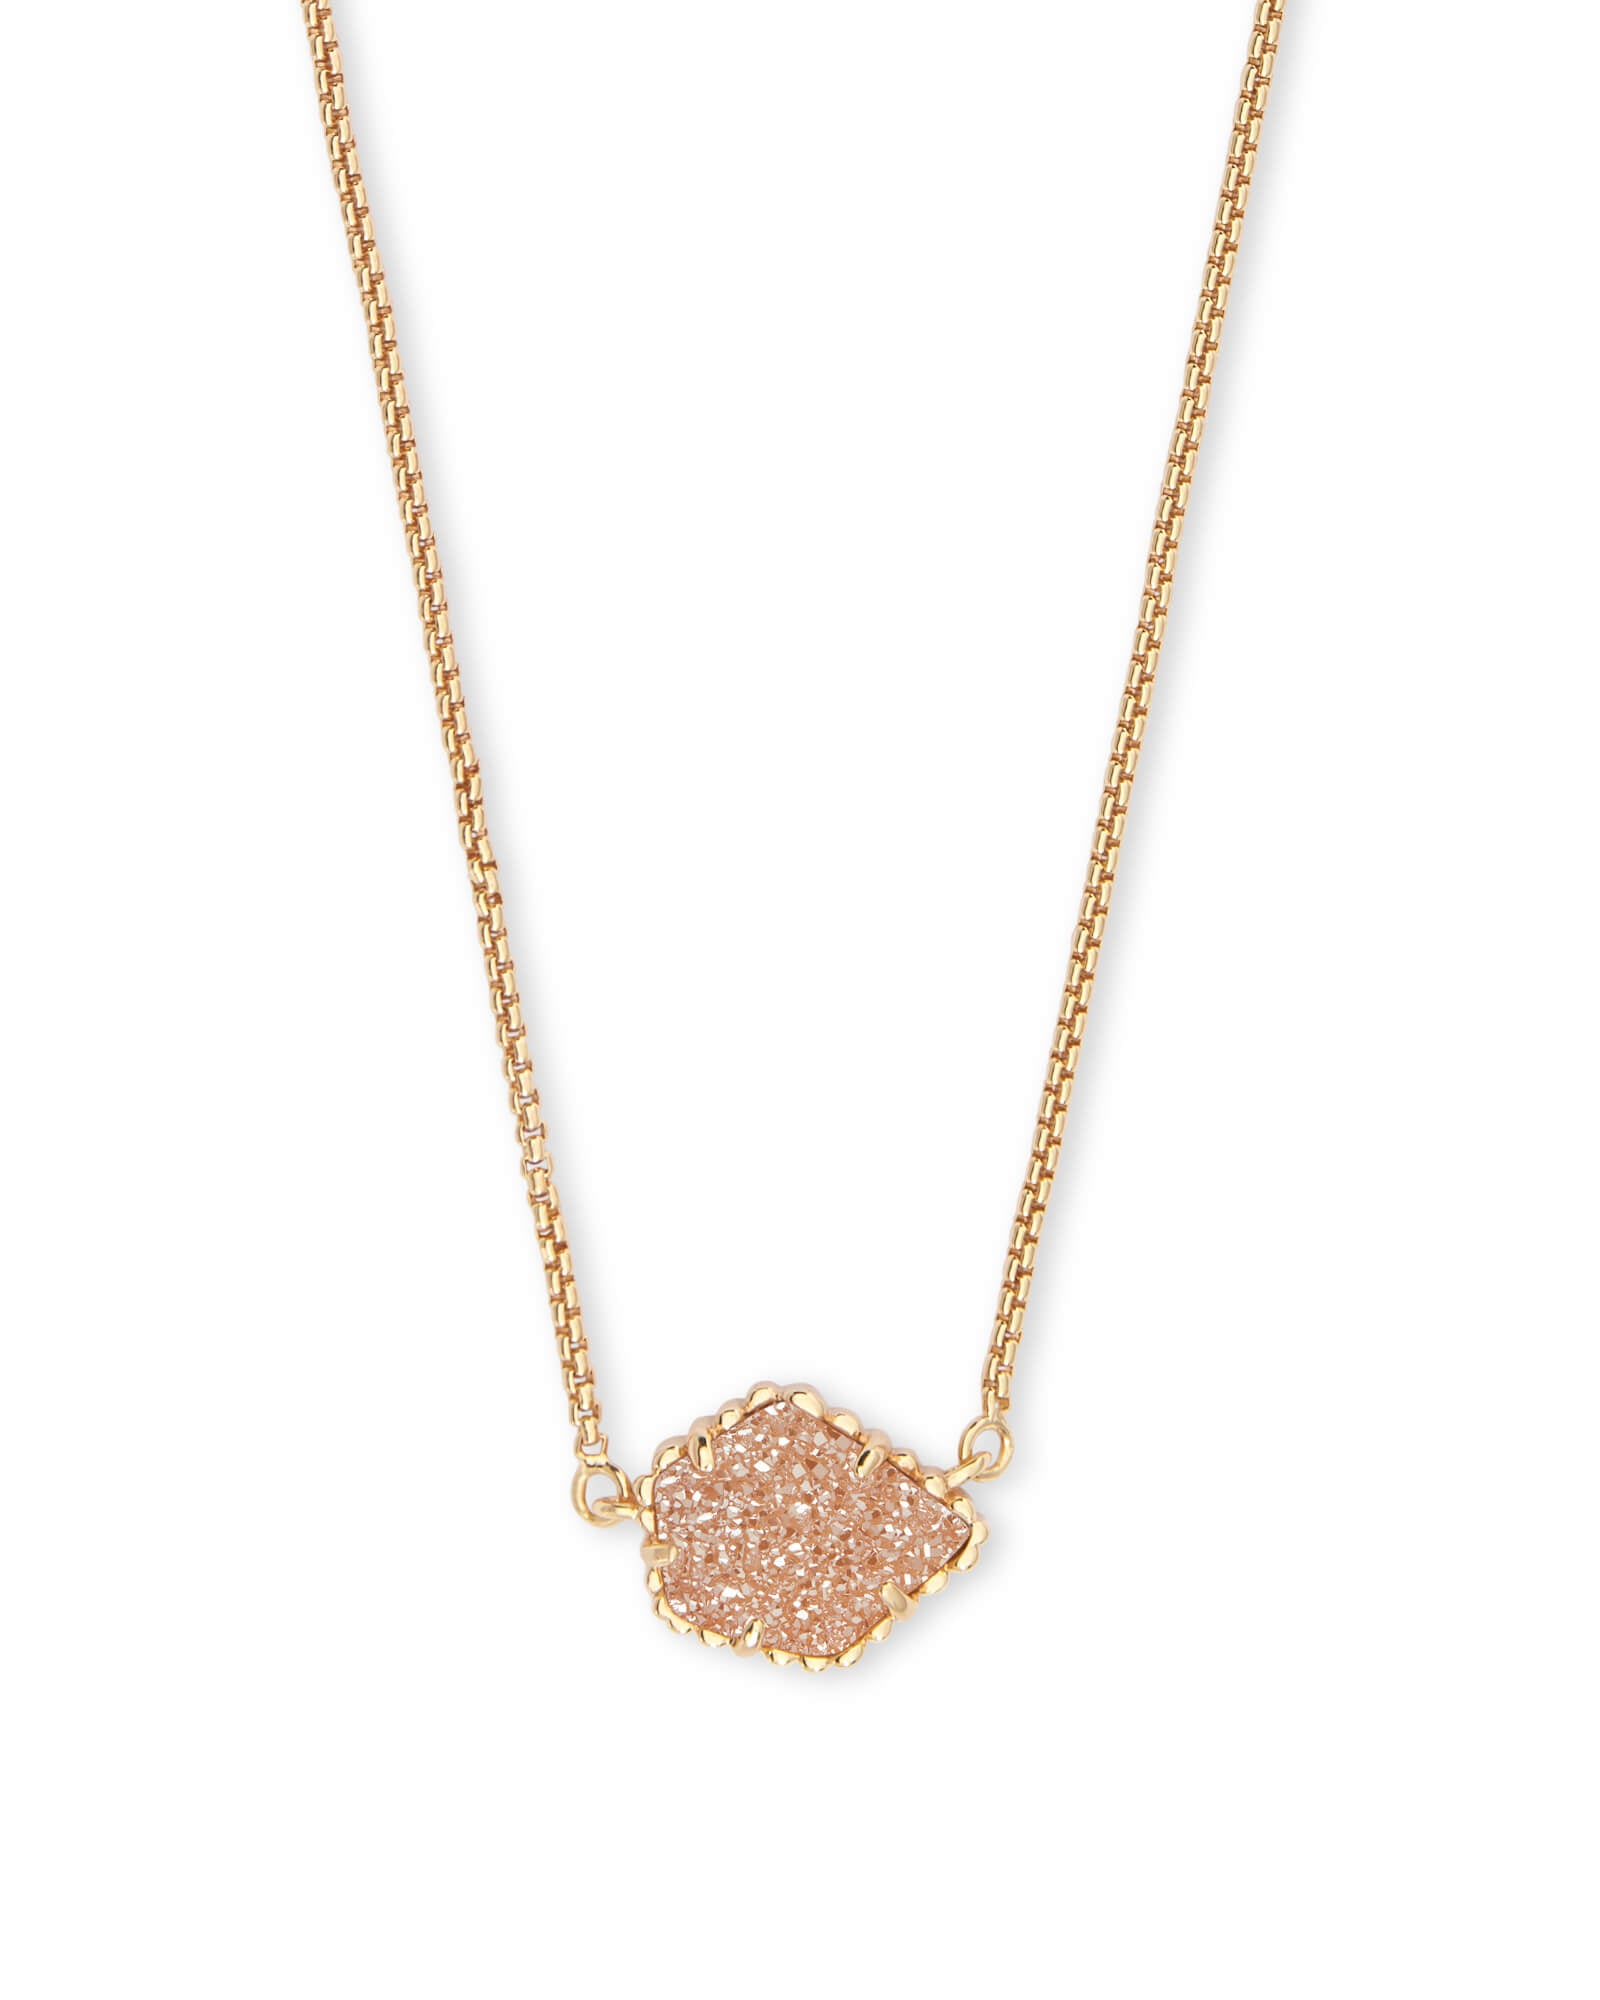 Tess Gold Pendant Necklace in Sand Drusy